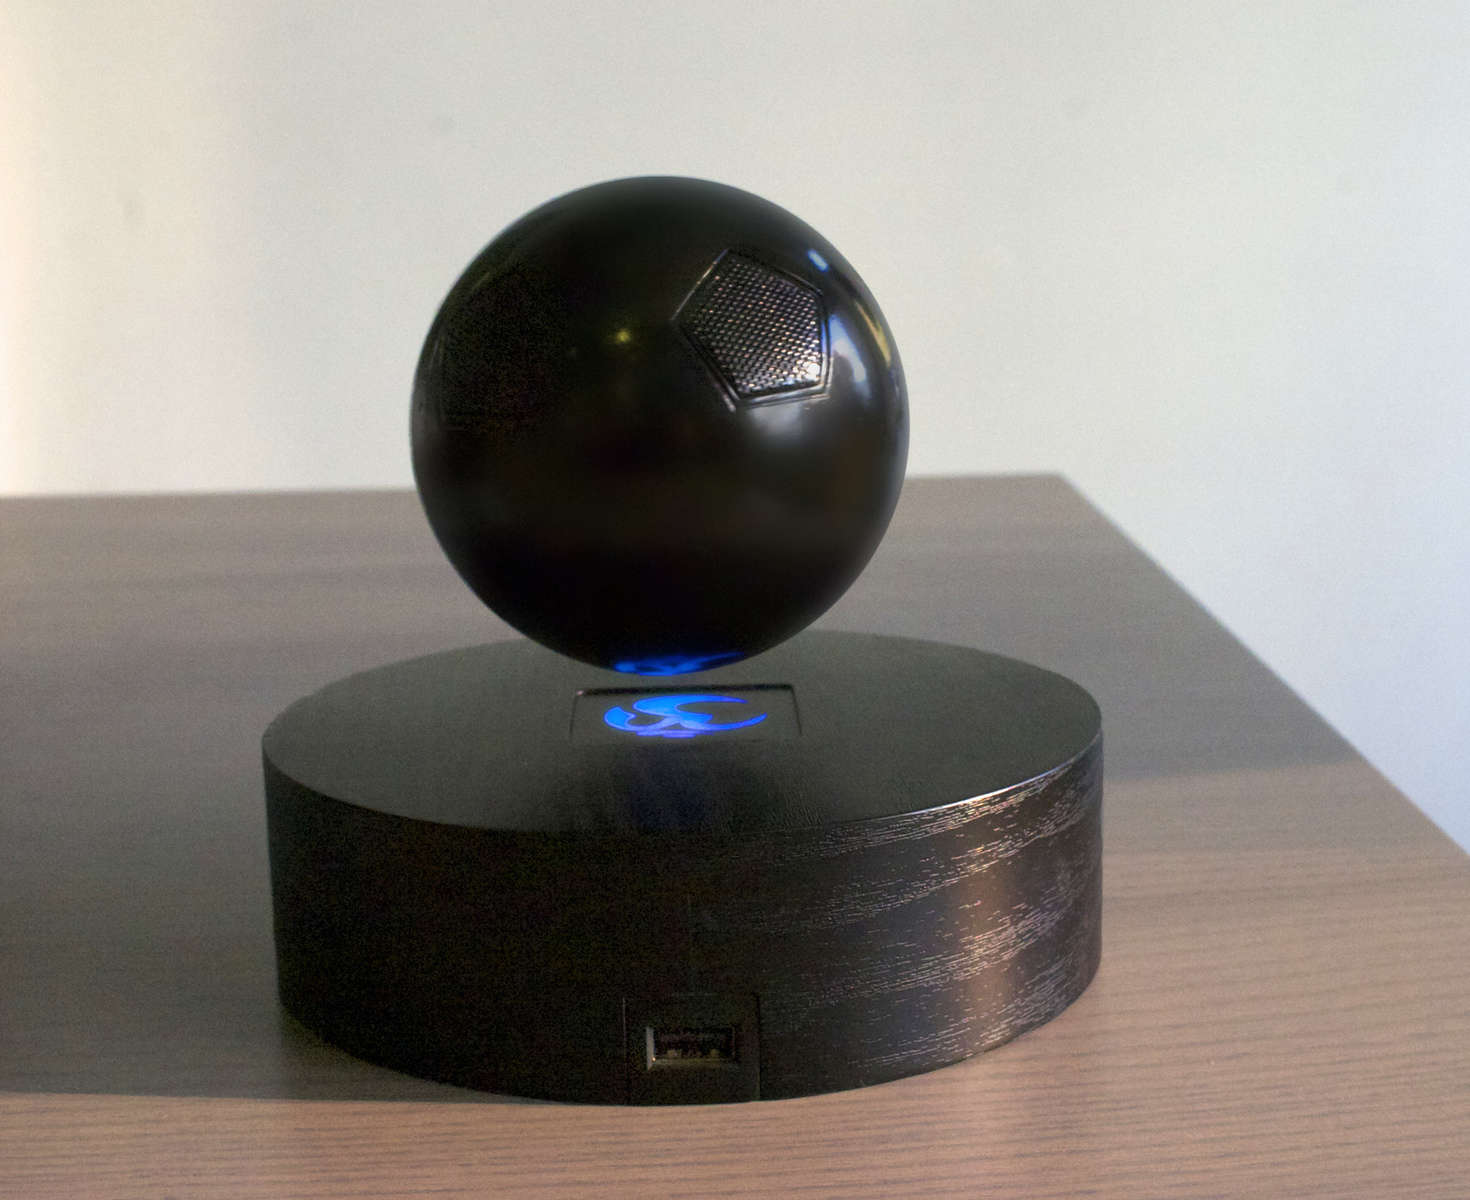 Magnets For Cars >> The OM/ONE Floating Bluetooth Speaker is a Really Cool Gadget